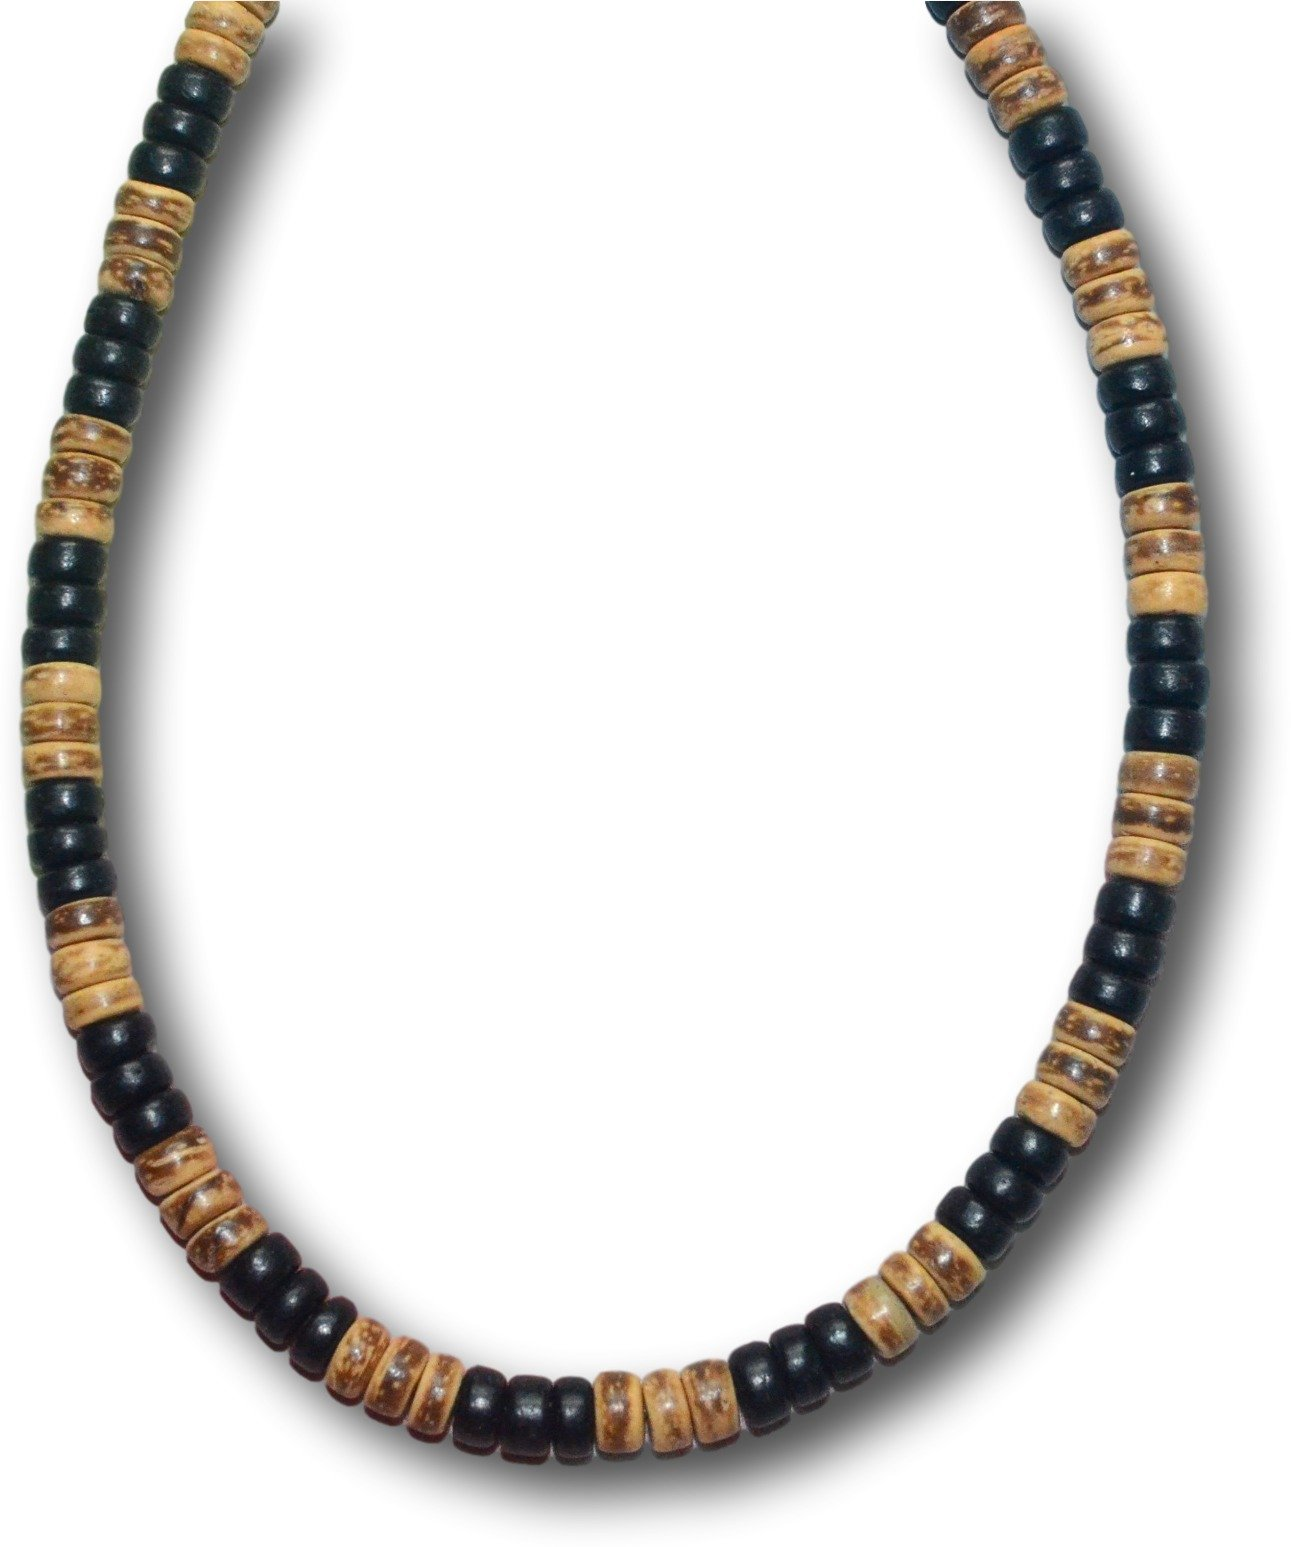 Native Treasure - 17 inch Mens Real Wood 3 Black 3 Tiger Coco Bead Surfer Necklace - 8mm (5/16'')